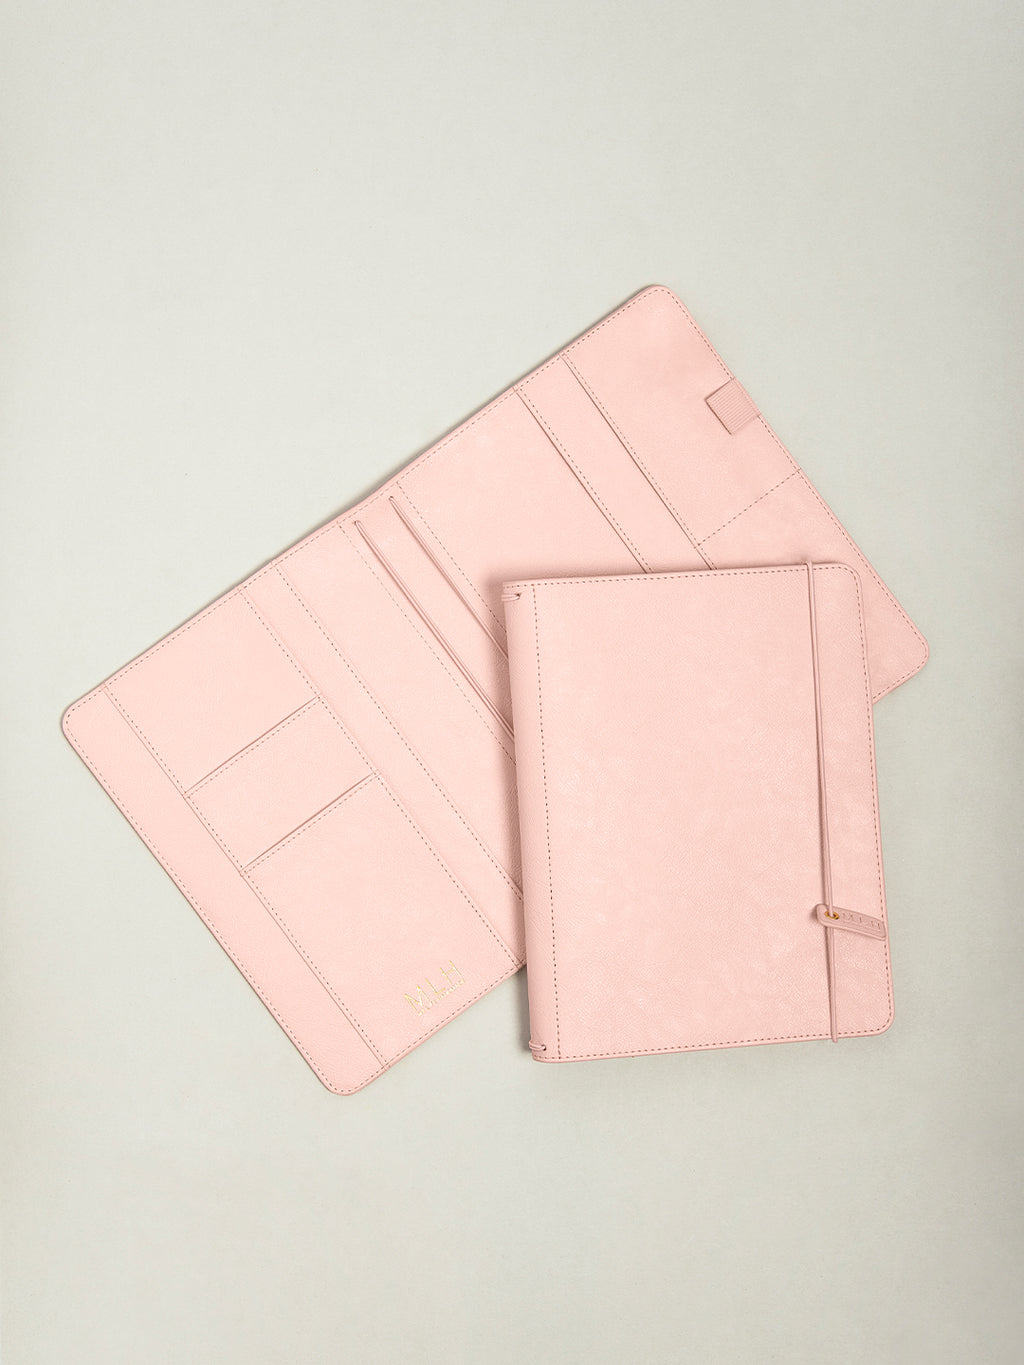 Pink PU Leather A5 Journal Holder - My Life Handmade